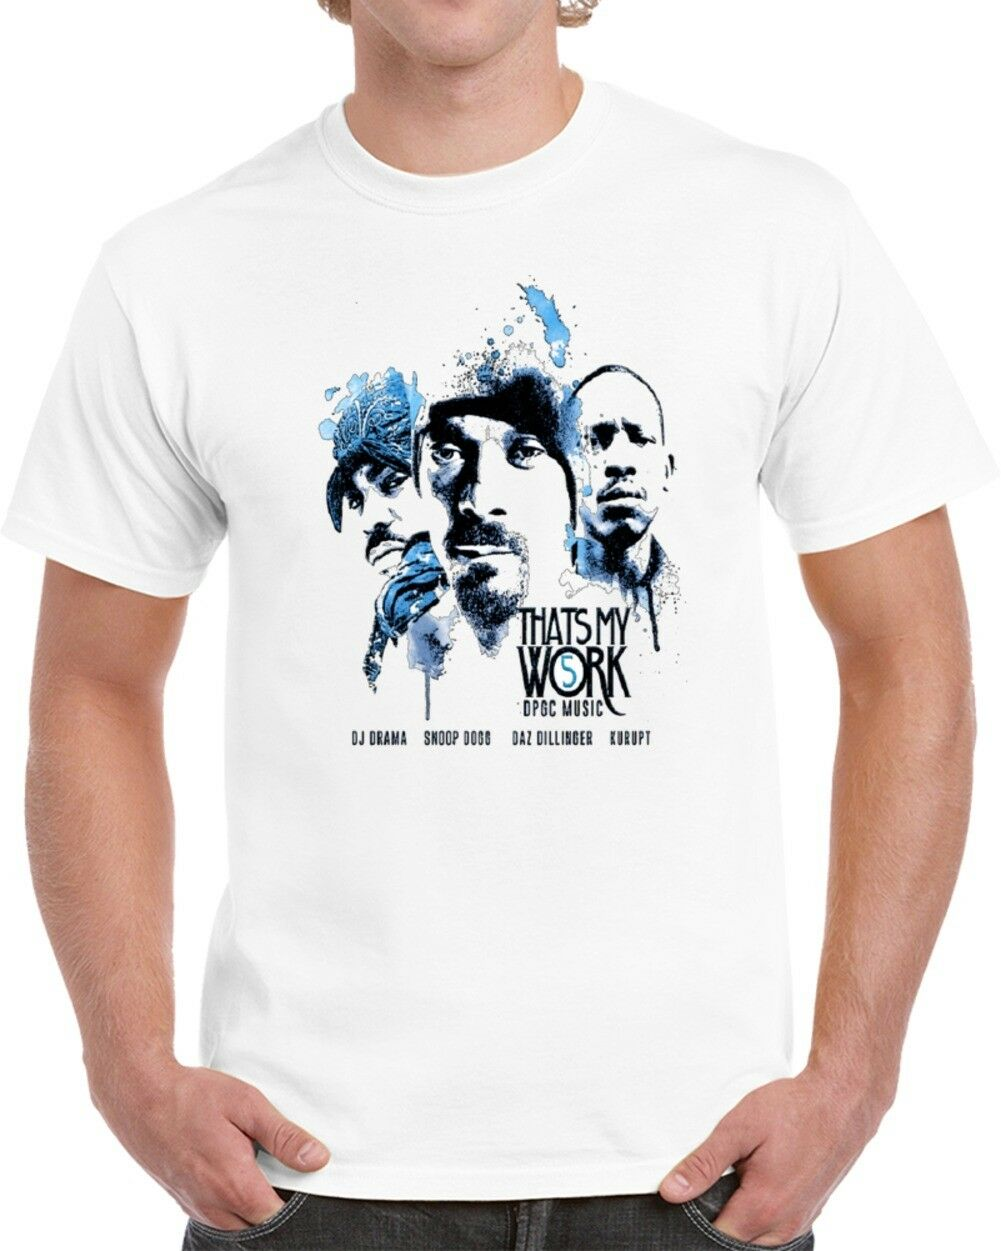 359aba8a That's My Work Tha Dogg Pound T Shirt short sleeve men Tee T shirt o-neck  knitted comfortable fabric